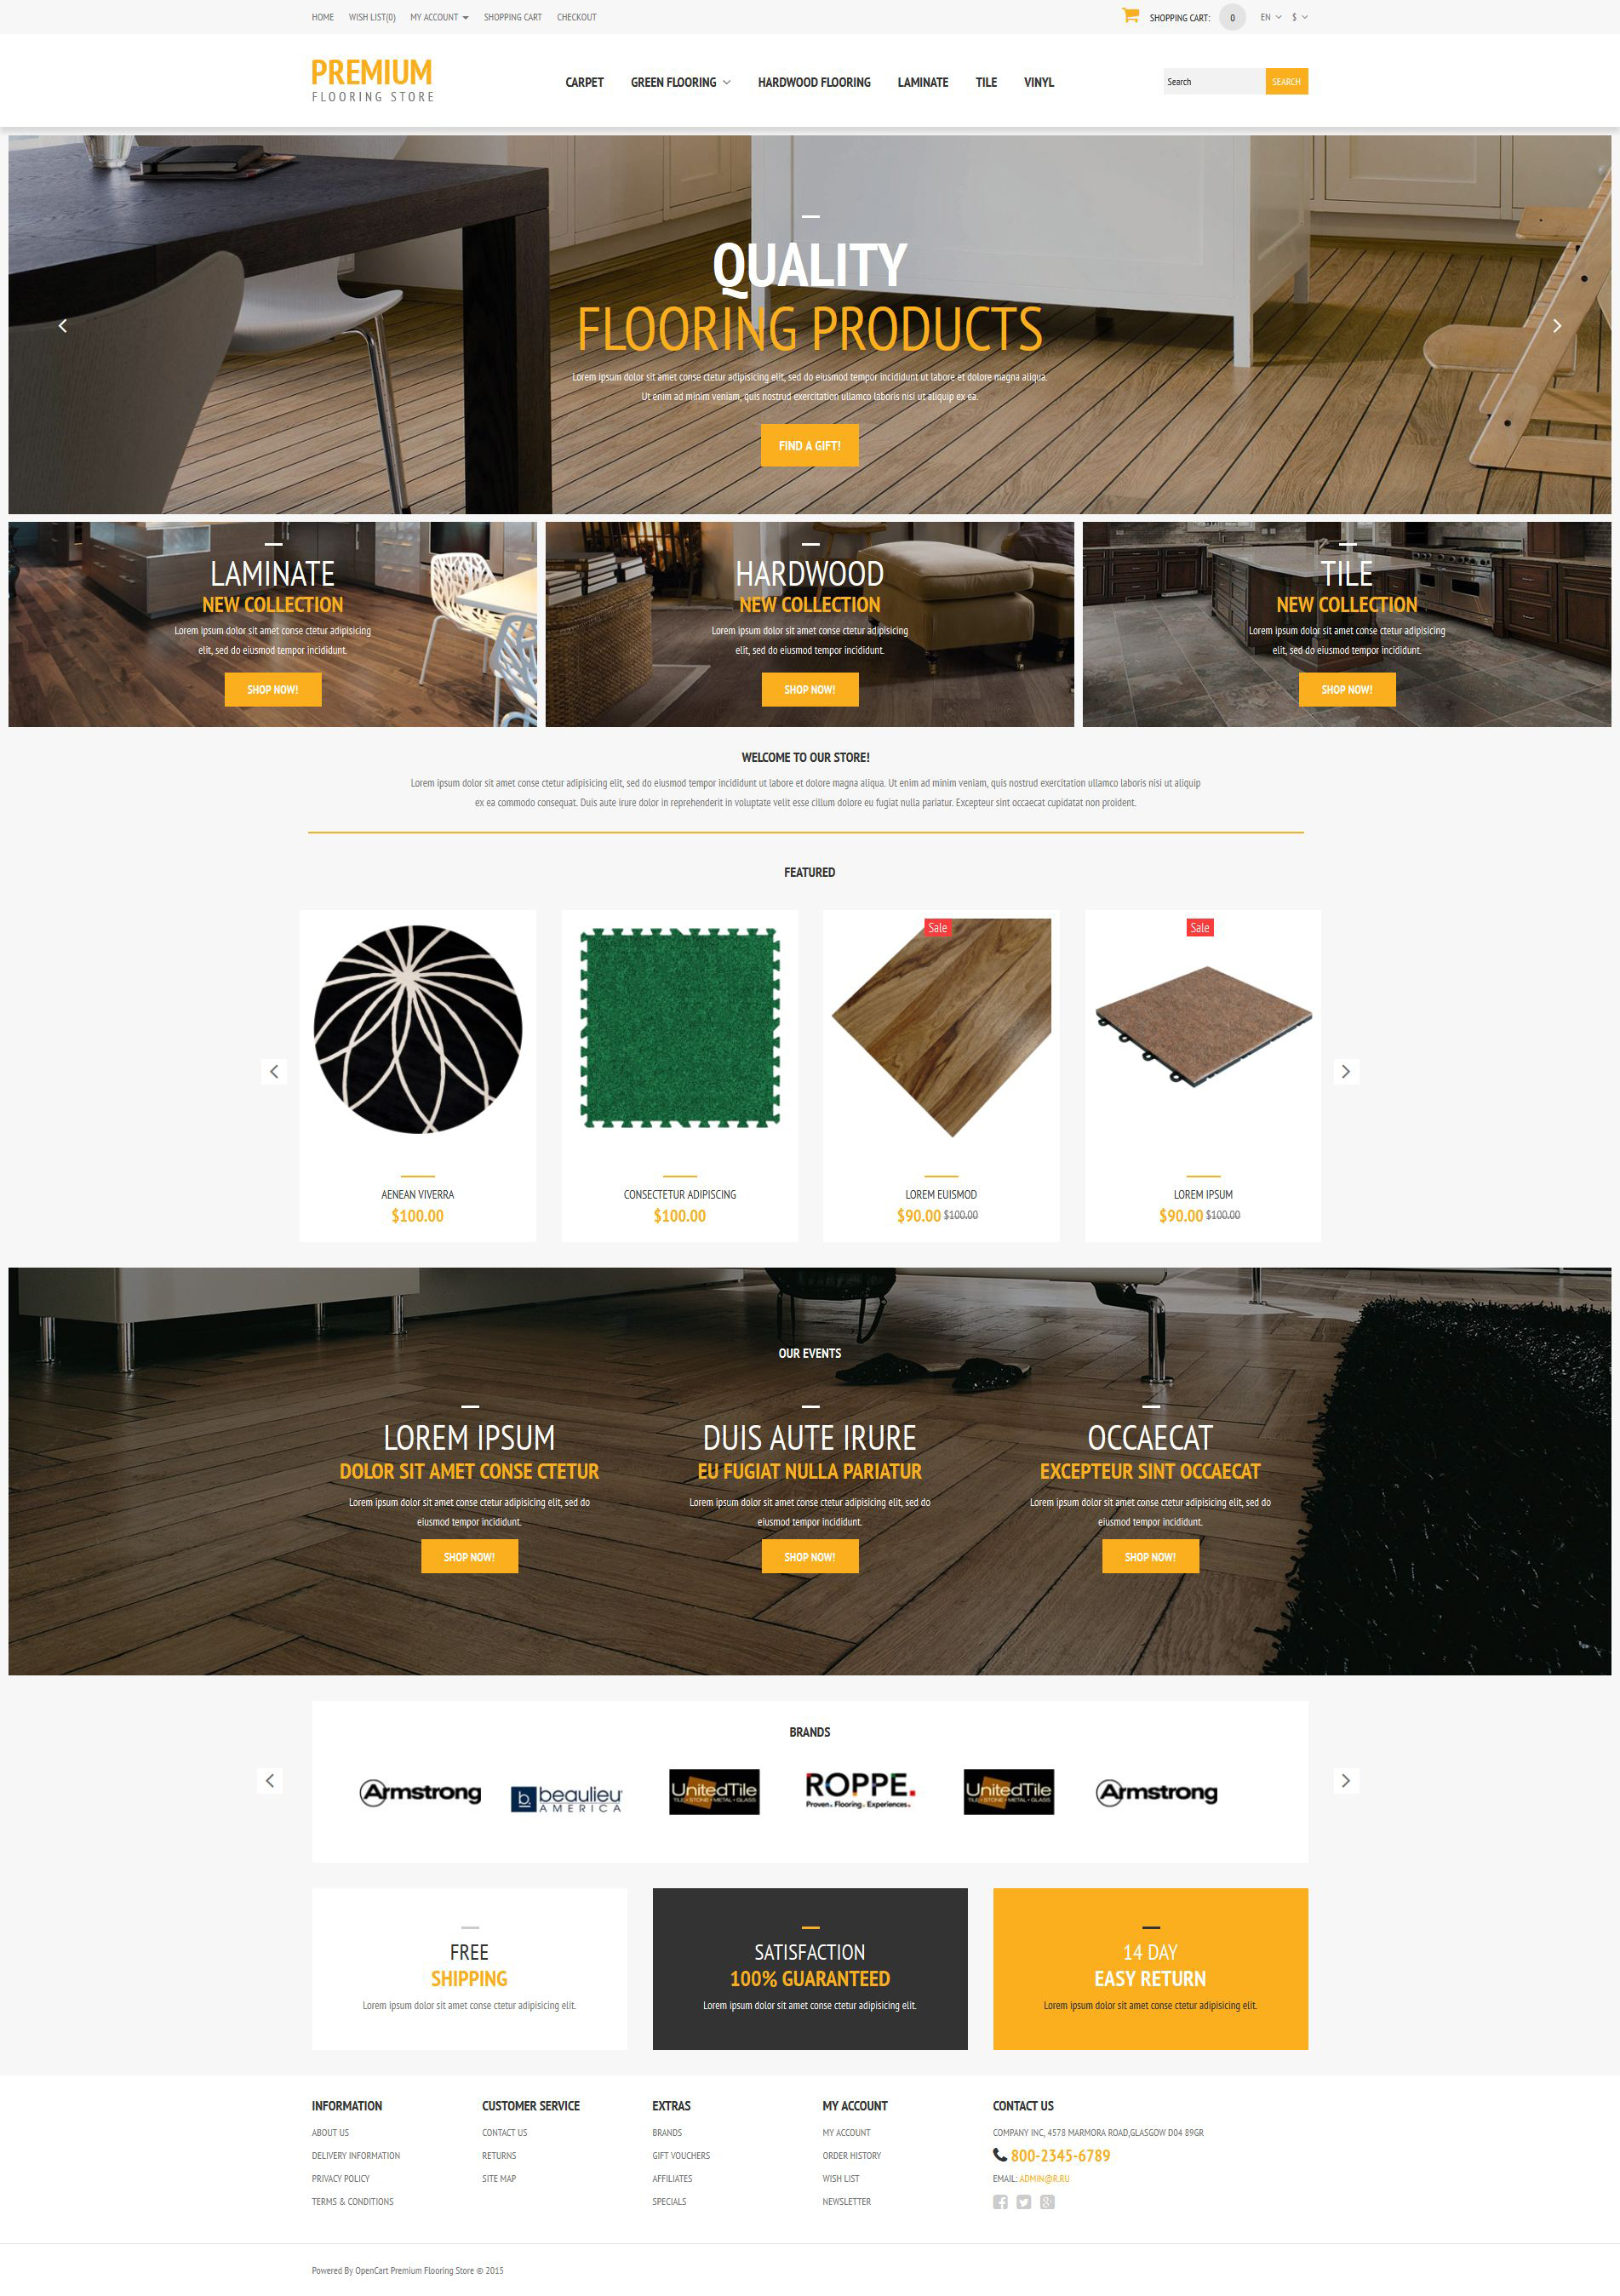 The Floor Flooring Online Store OpenCart Design 53450, one of the best OpenCart templates of its kind (interior & furniture, most popular), also known as floor flooring online store OpenCart template, shop OpenCart template, laminat OpenCart template, wood OpenCart template, carpet OpenCart template, area OpenCart template, rugs OpenCart template, cork OpenCart template, overhaul OpenCart template, maintenance OpenCart template, shopping cart and related with floor flooring online store, shop, laminat, wood, carpet, area, rugs, cork, overhaul, maintenance, shopping cart, etc.